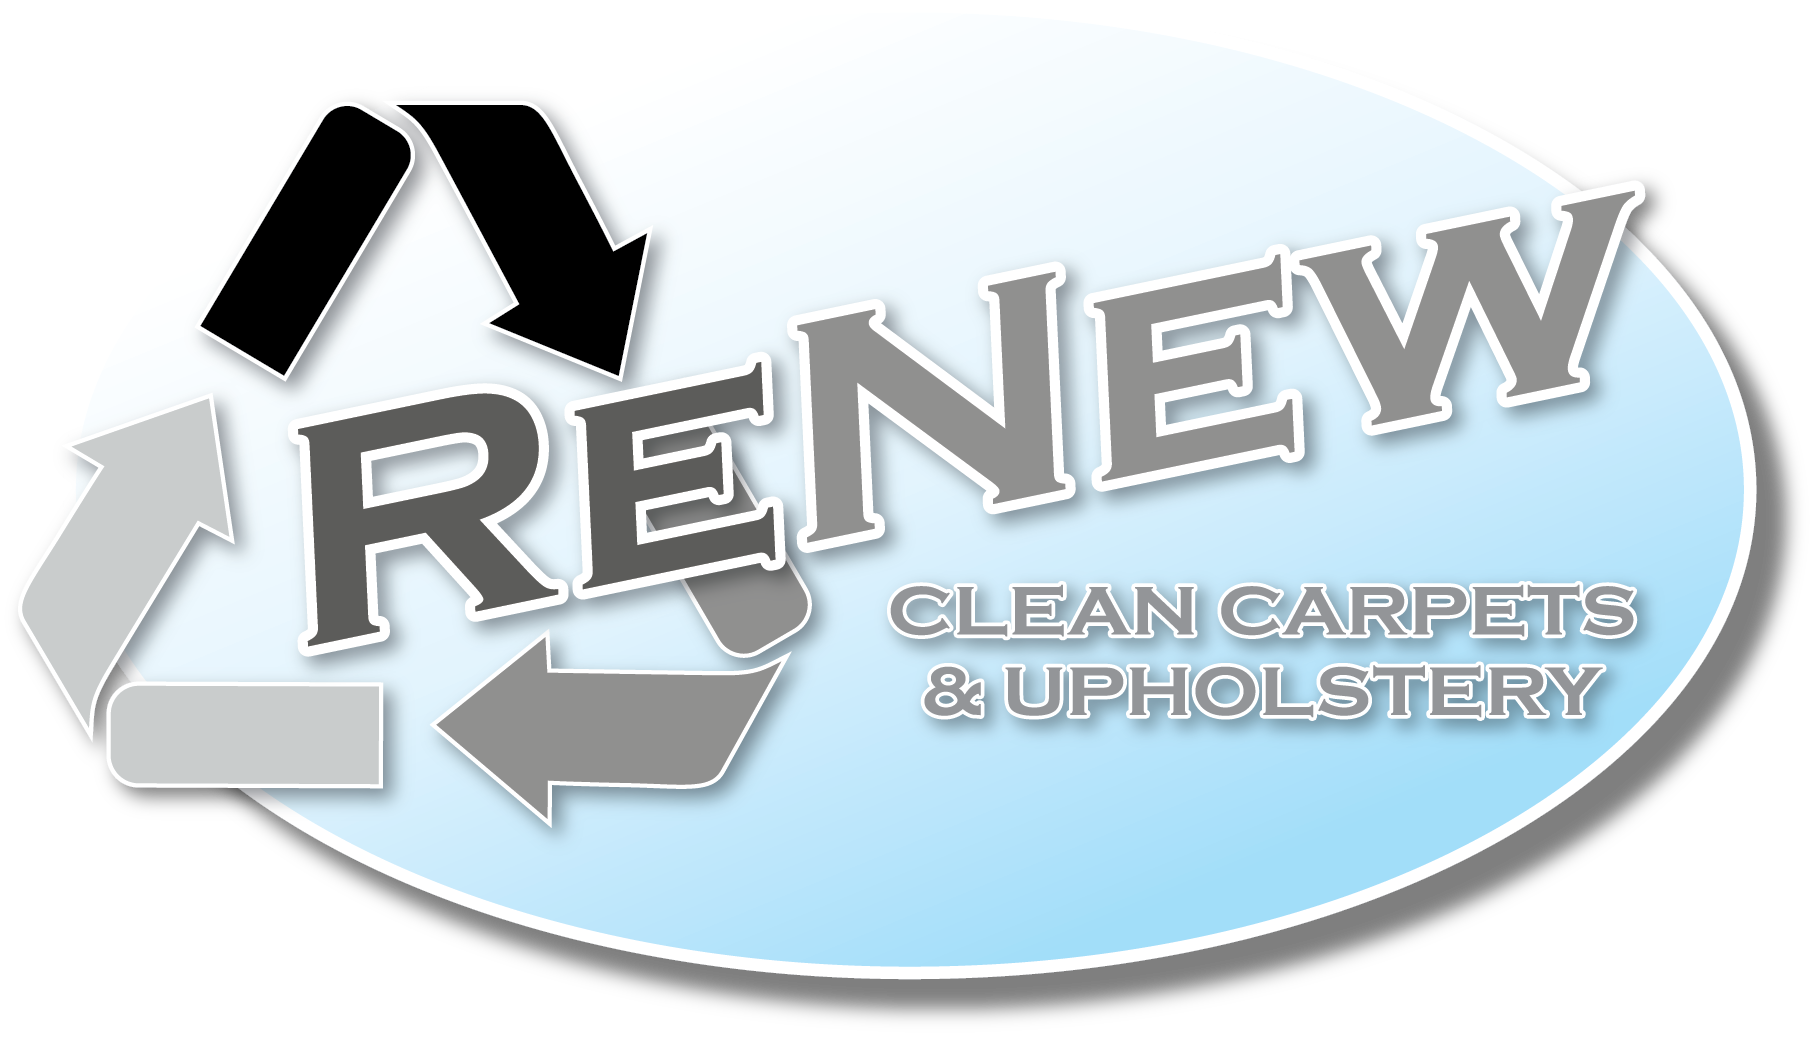 Renew Carpet Cleaning 719-728-0180